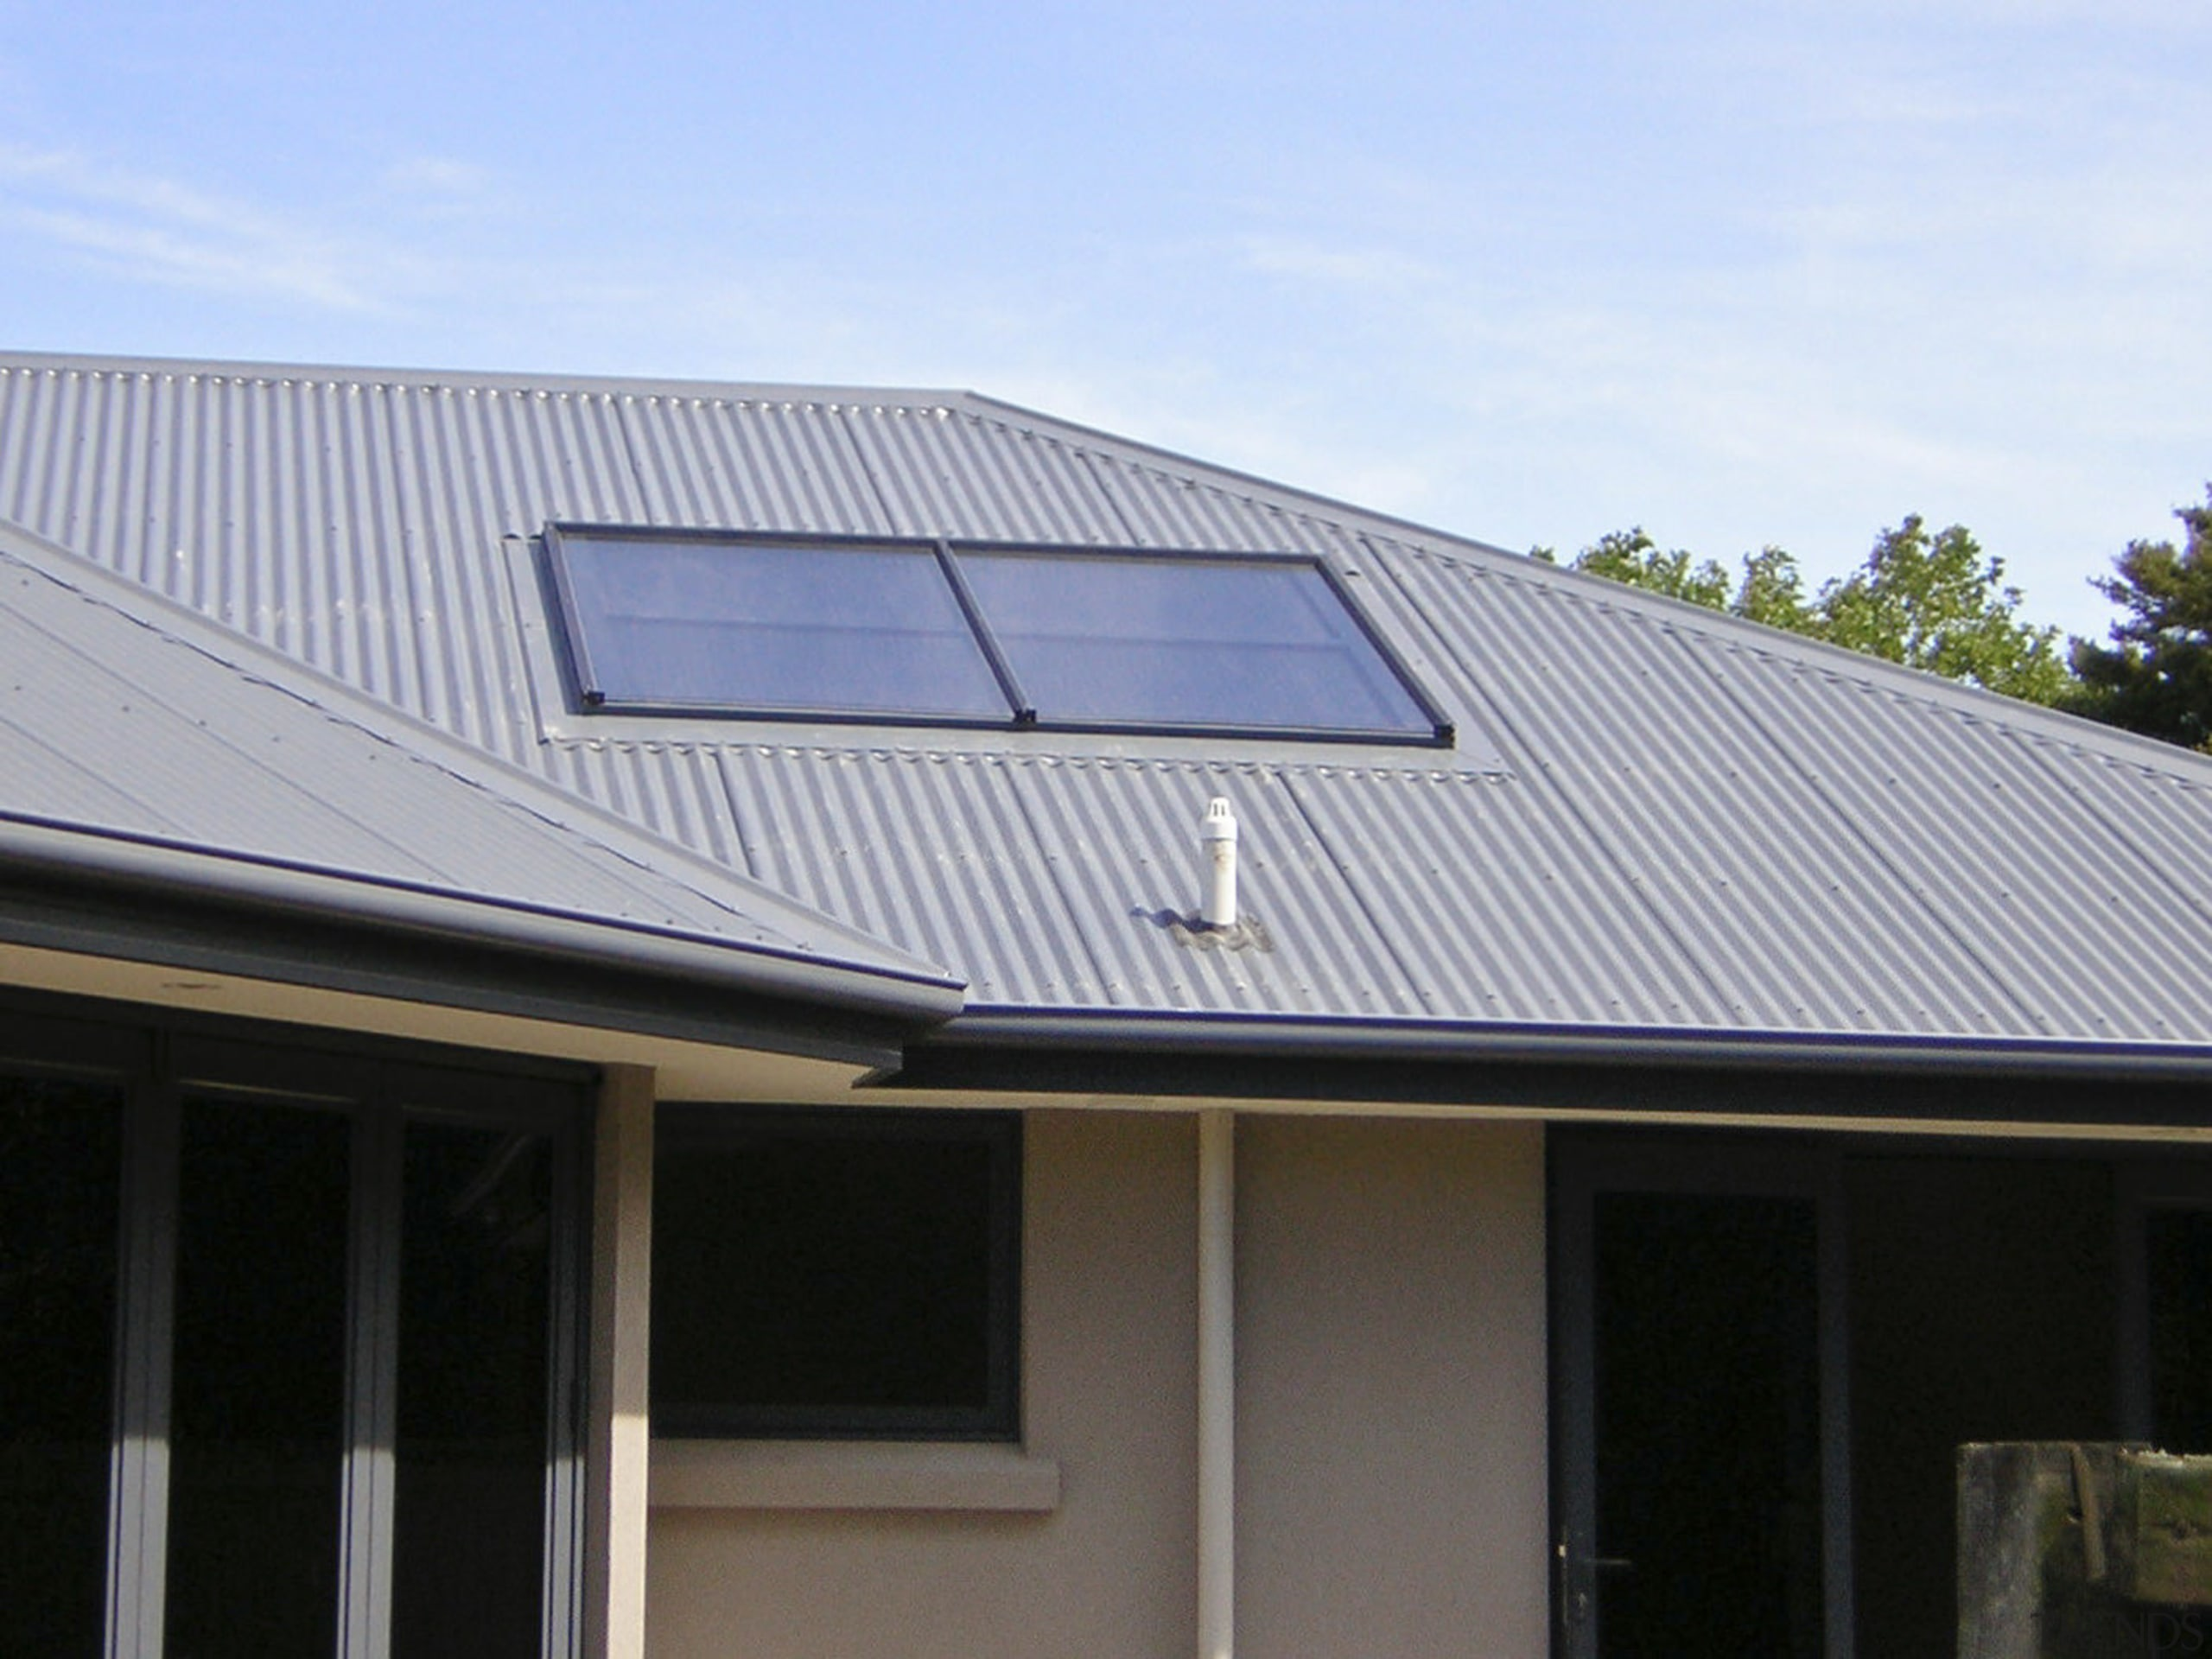 This large home efficiently uses solar energy thanks daylighting, facade, house, roof, siding, solar energy, solar panel, solar power, window, gray, black